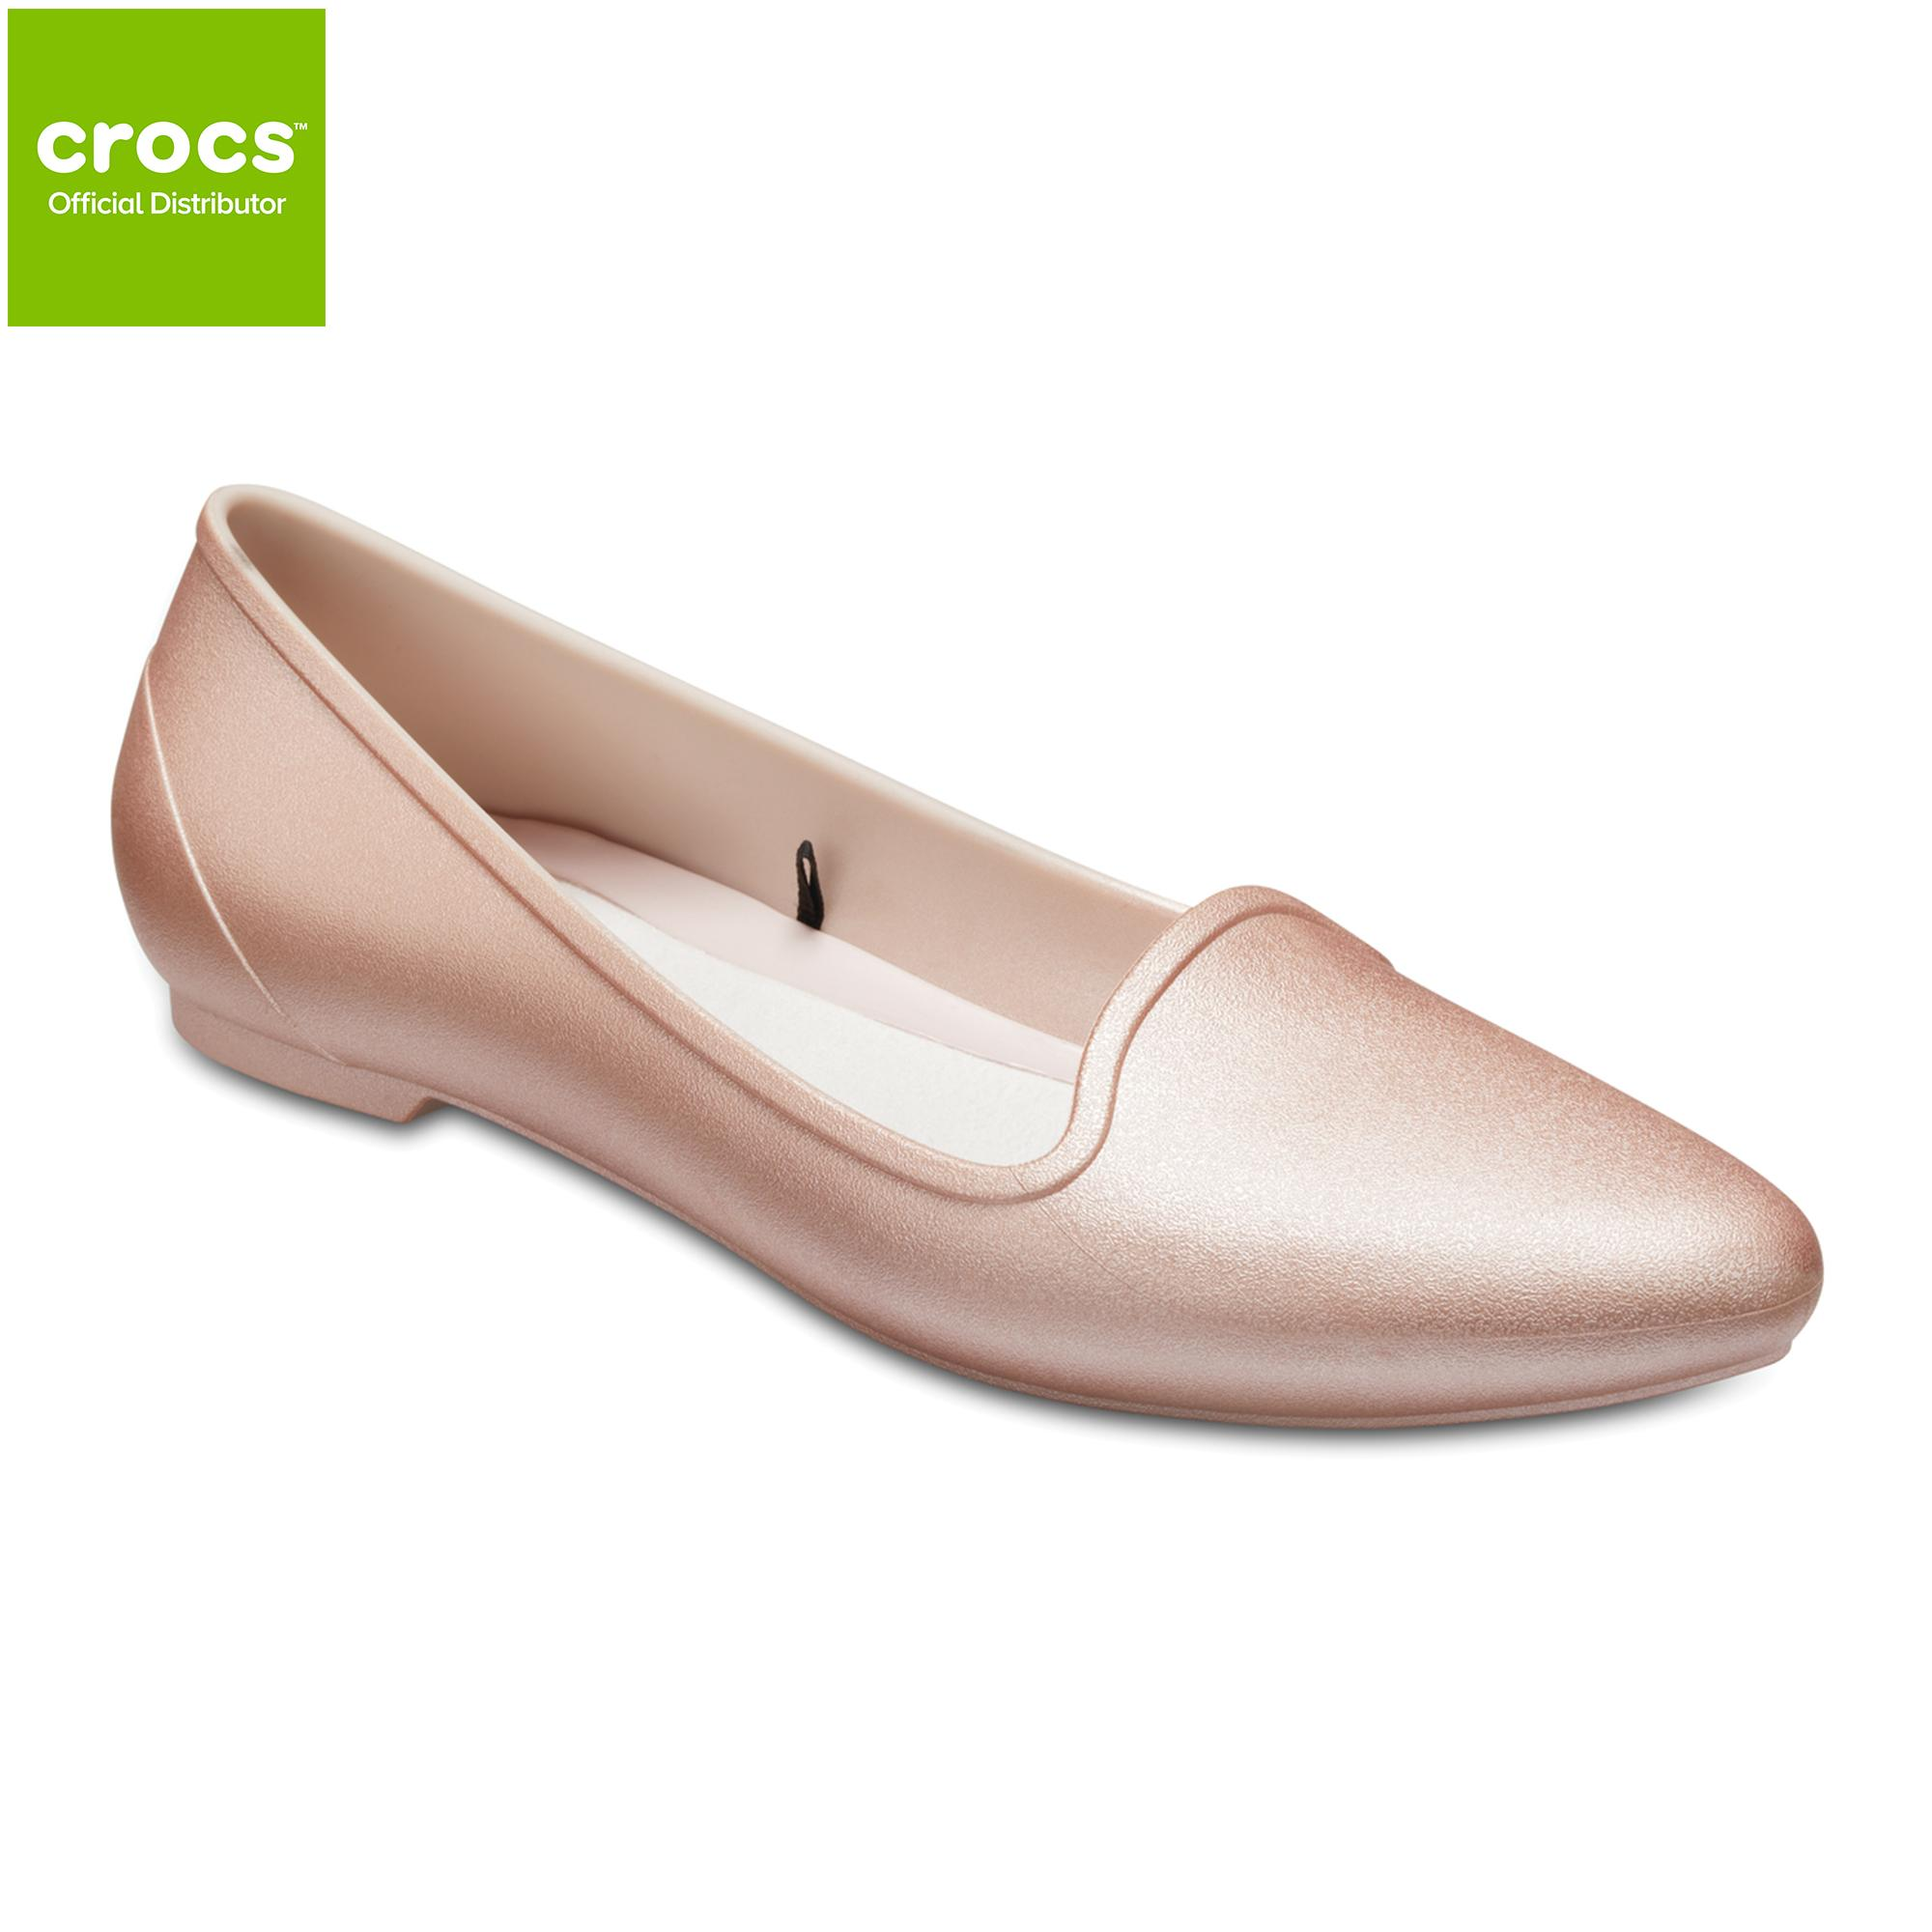 4a5903b72 Womens Ballet Shoes for sale - Ballet Flats online brands